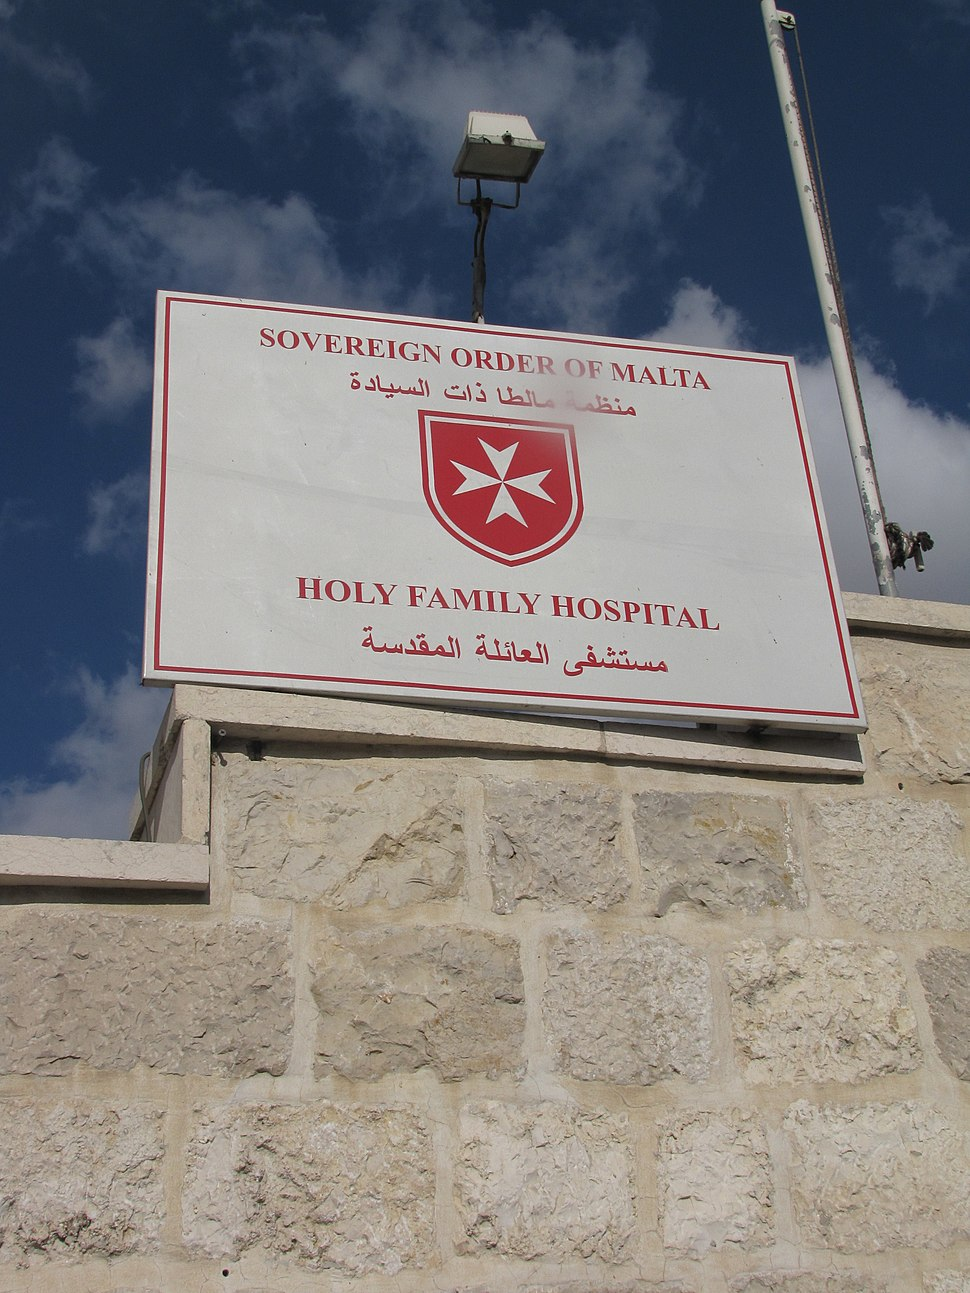 Sovereign order of Malta - Holy family hospital - Bethlehem